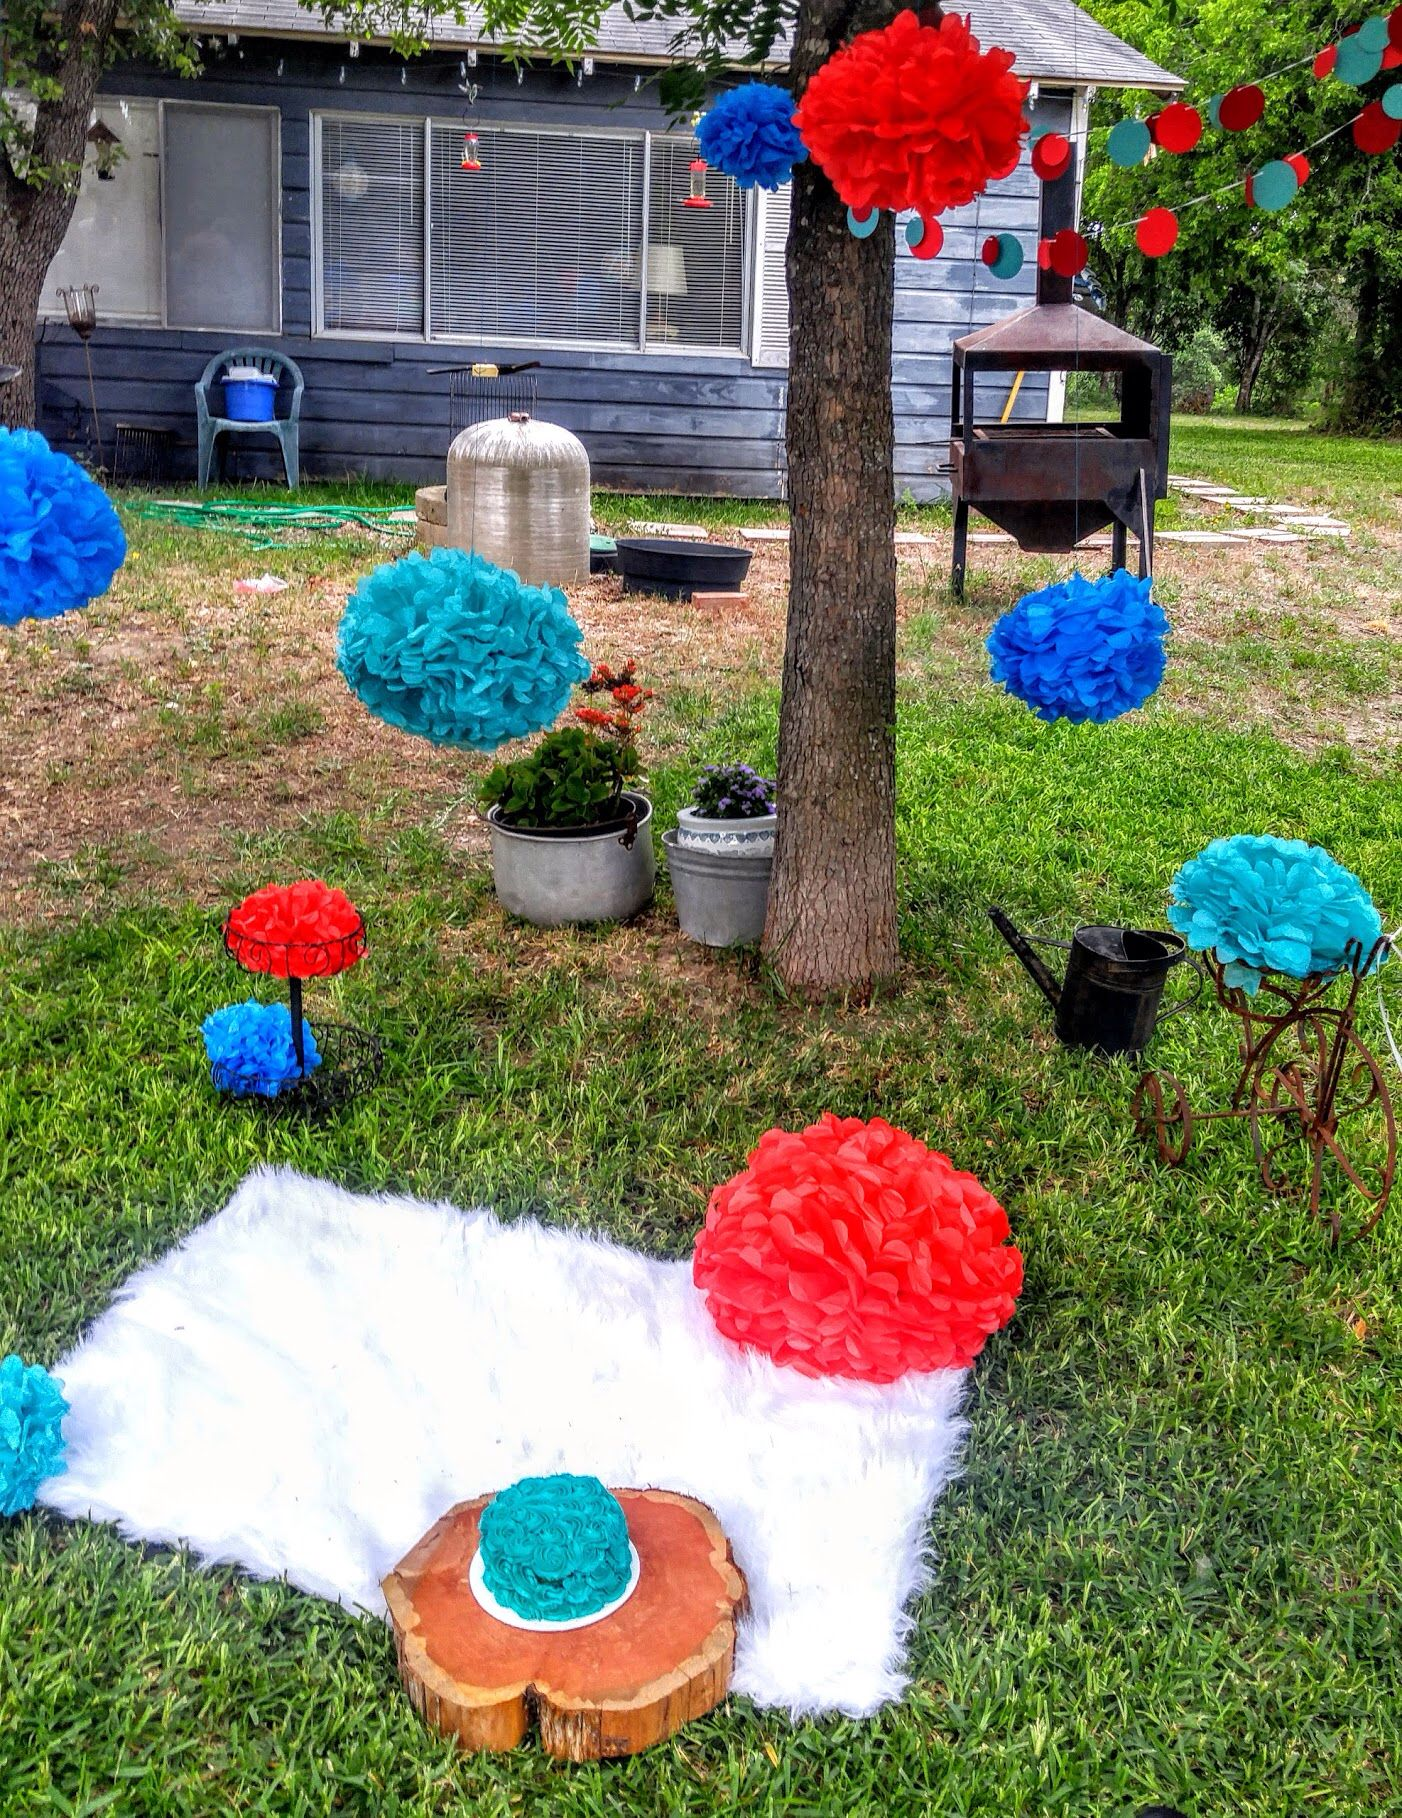 Outdoor cake smash set up for first birthday